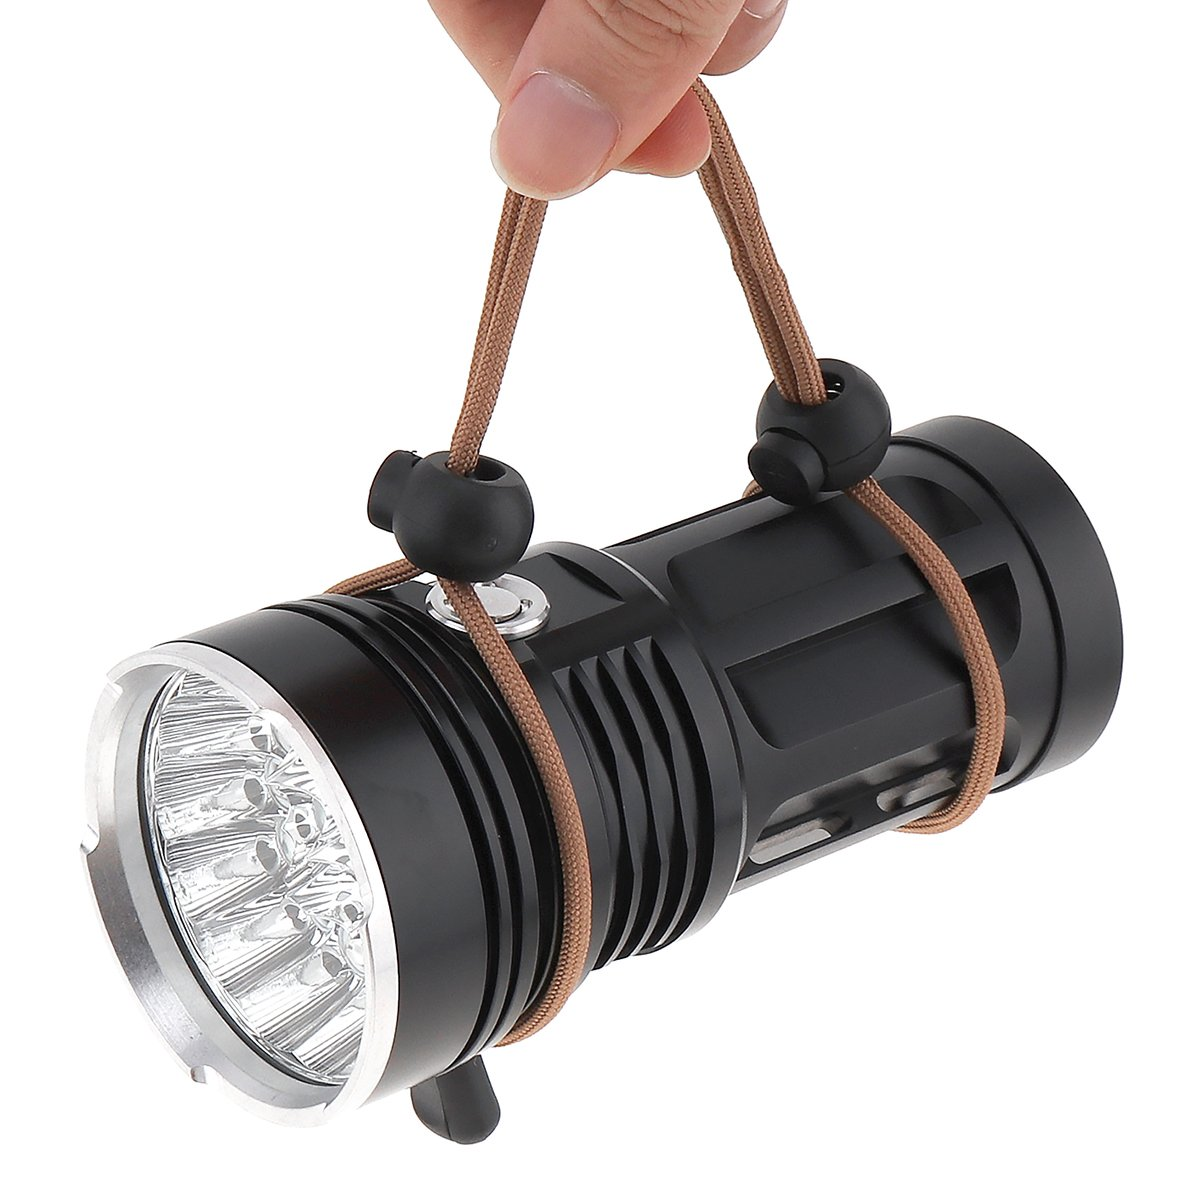 WindFire New Ultra Bright 16 LED Handheld Searchlight, T6 LED Water Resistant Best High Lumen Tactical Flashlight with 3 Modes, Portable Self-Defense Spotlight Torch for Home Outdoor Camping, Hunting by WindFire (Image #8)